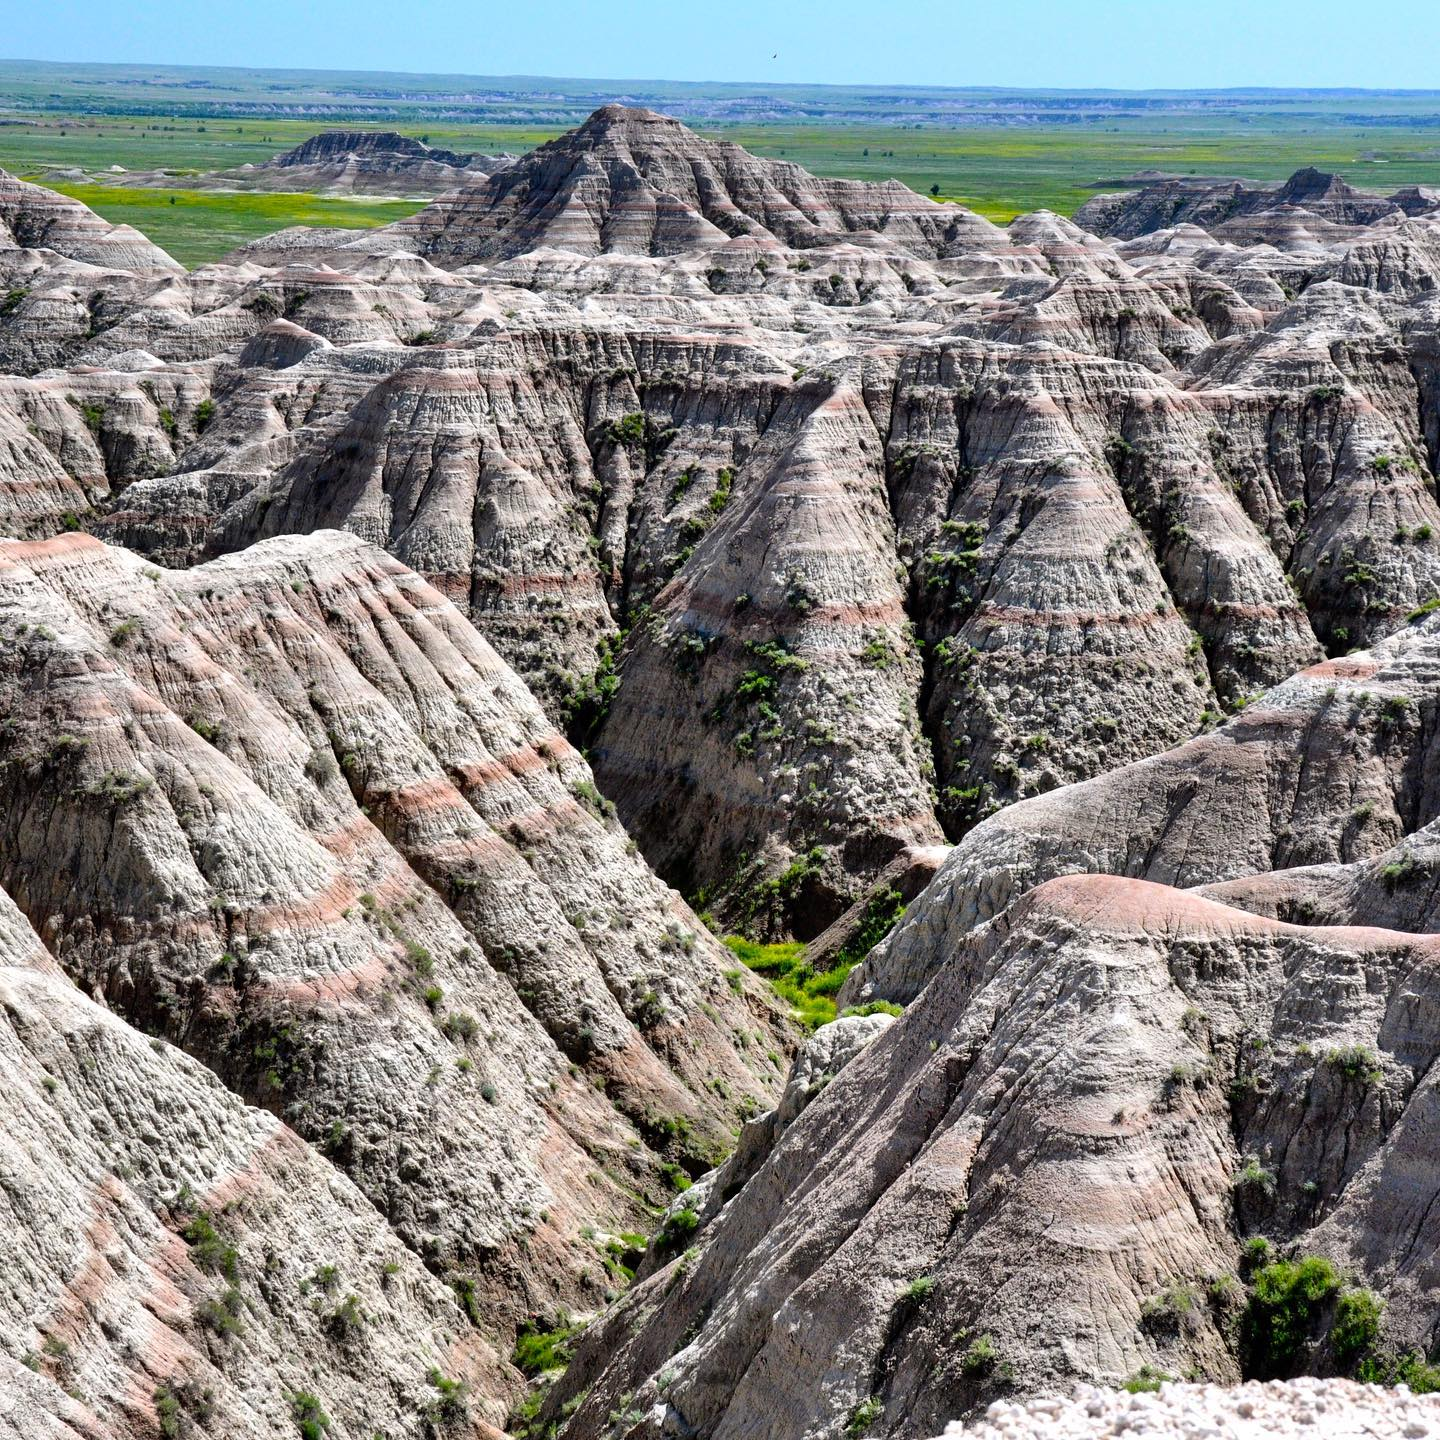 Badlands NP, South Dakota The Badlands are quite unique and one of the most underrated National Parks in the United States.  #roadtrippin #roadtripusa🇺🇸 #traveltheusa #southdakota #southdakotagram #badlands #badlandsnationalpark #nature #naturephotography #naturelovers #landscape #labdscapephotography #sobeautiful #beautifulnature #nationalparksusa #scenicview #amazingplaces #travelblogger #travellover